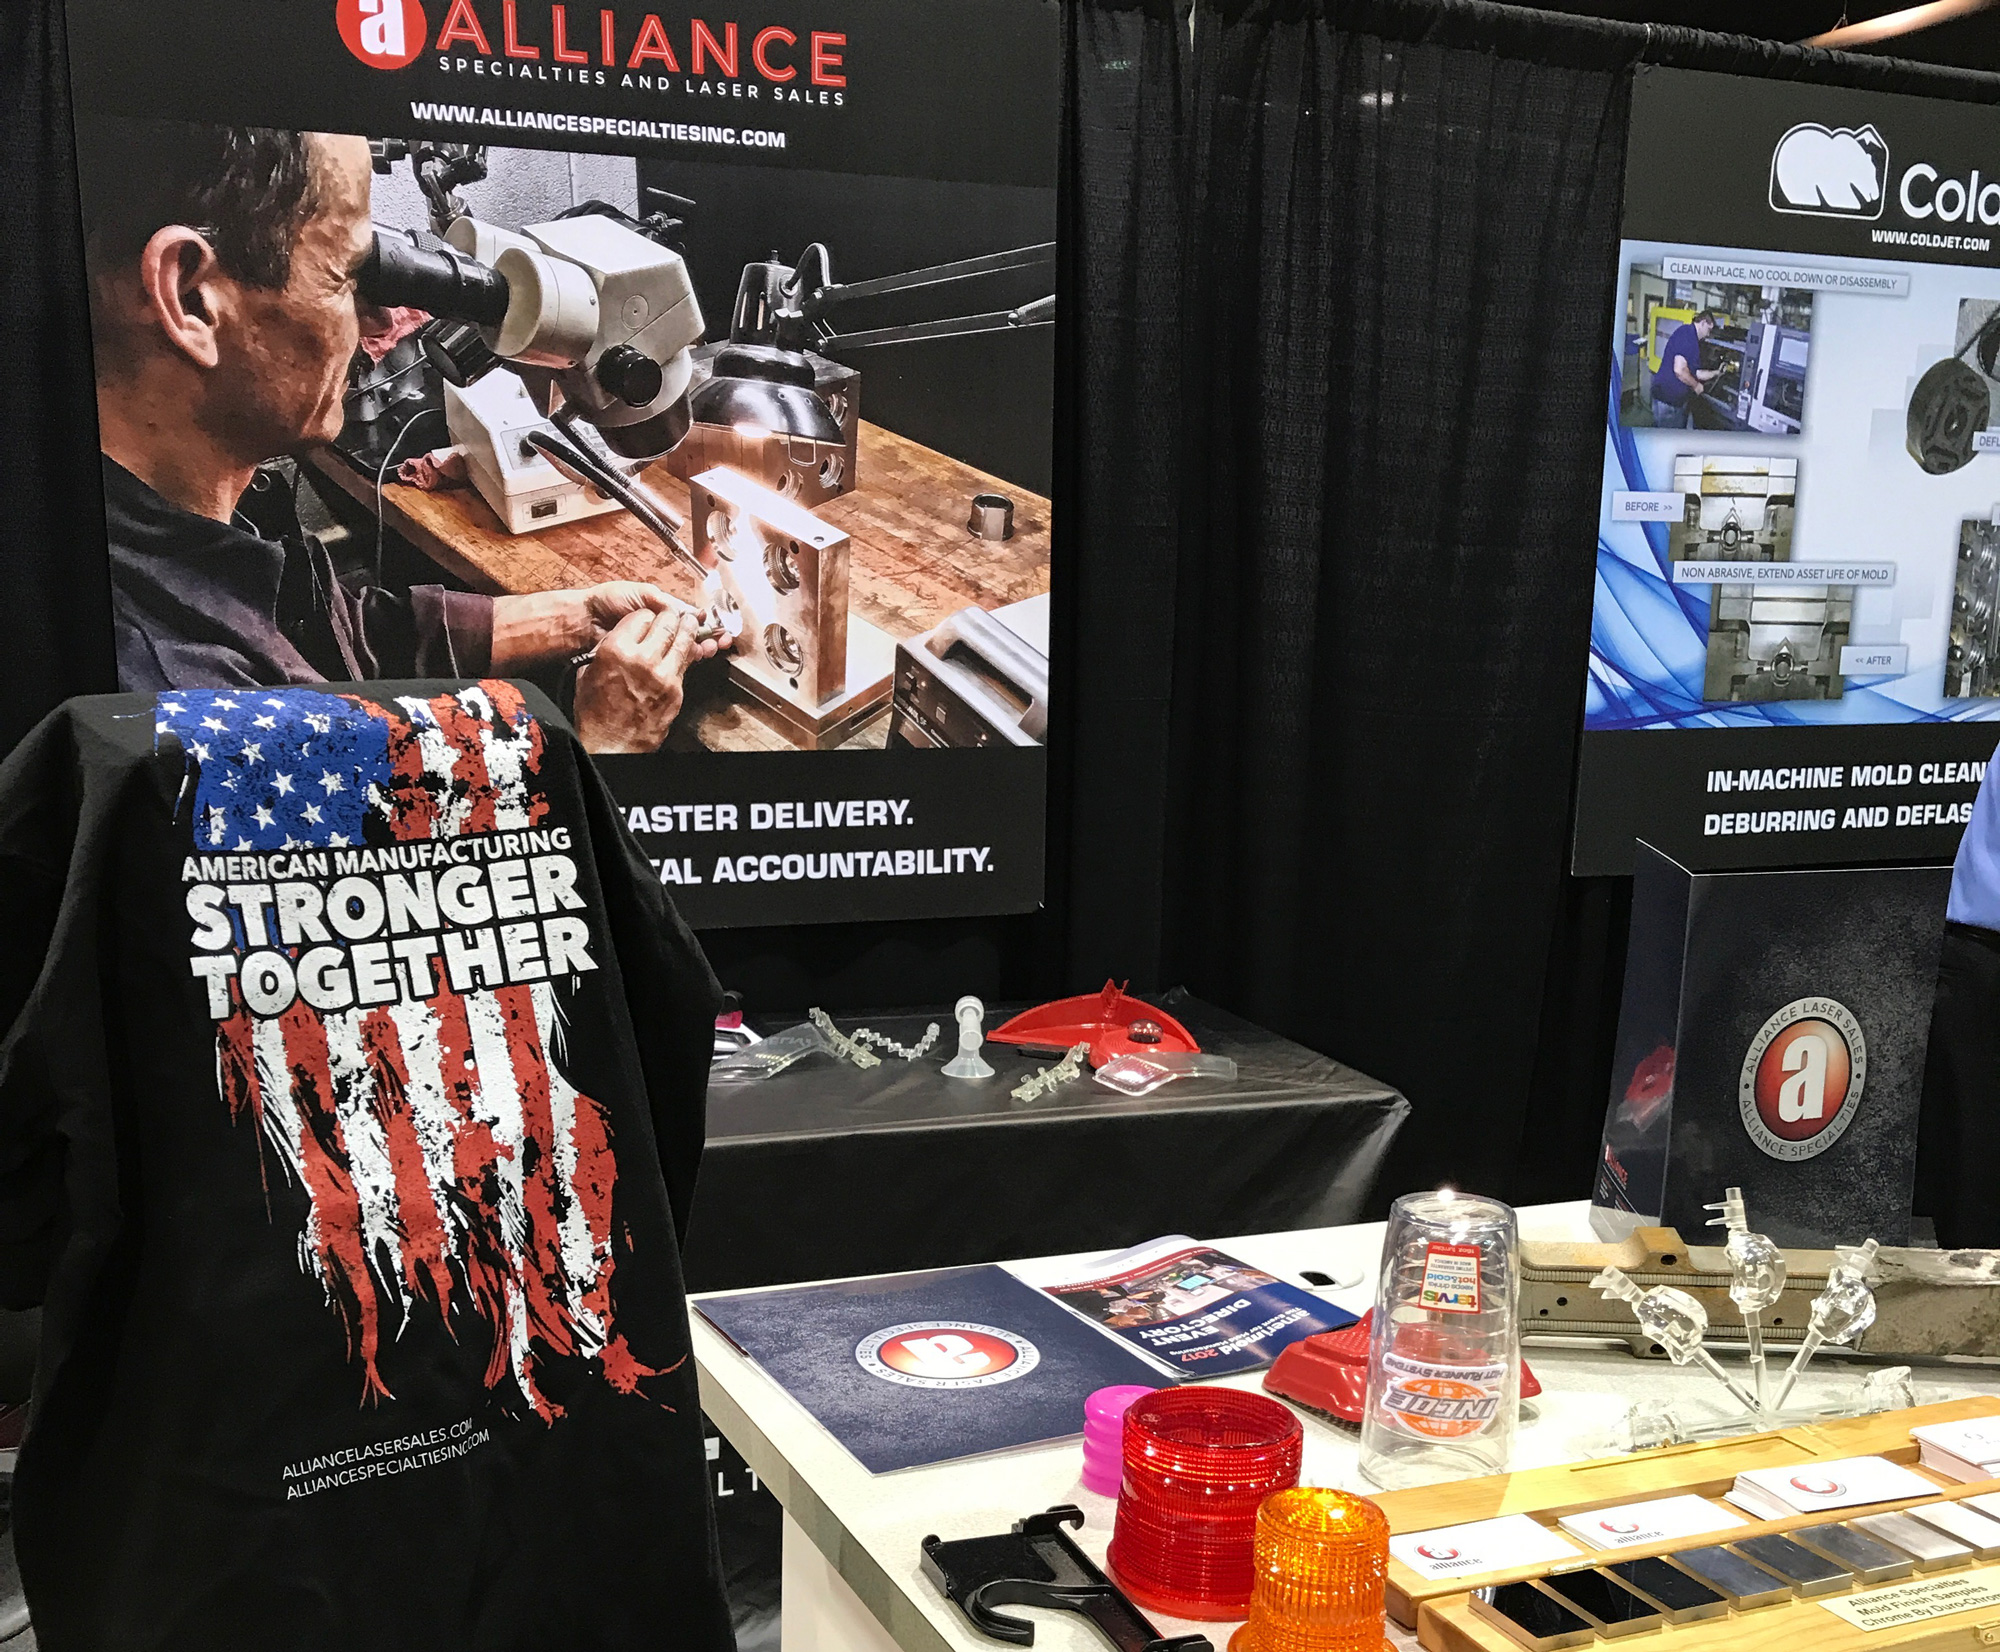 Alliance Specialties Booth